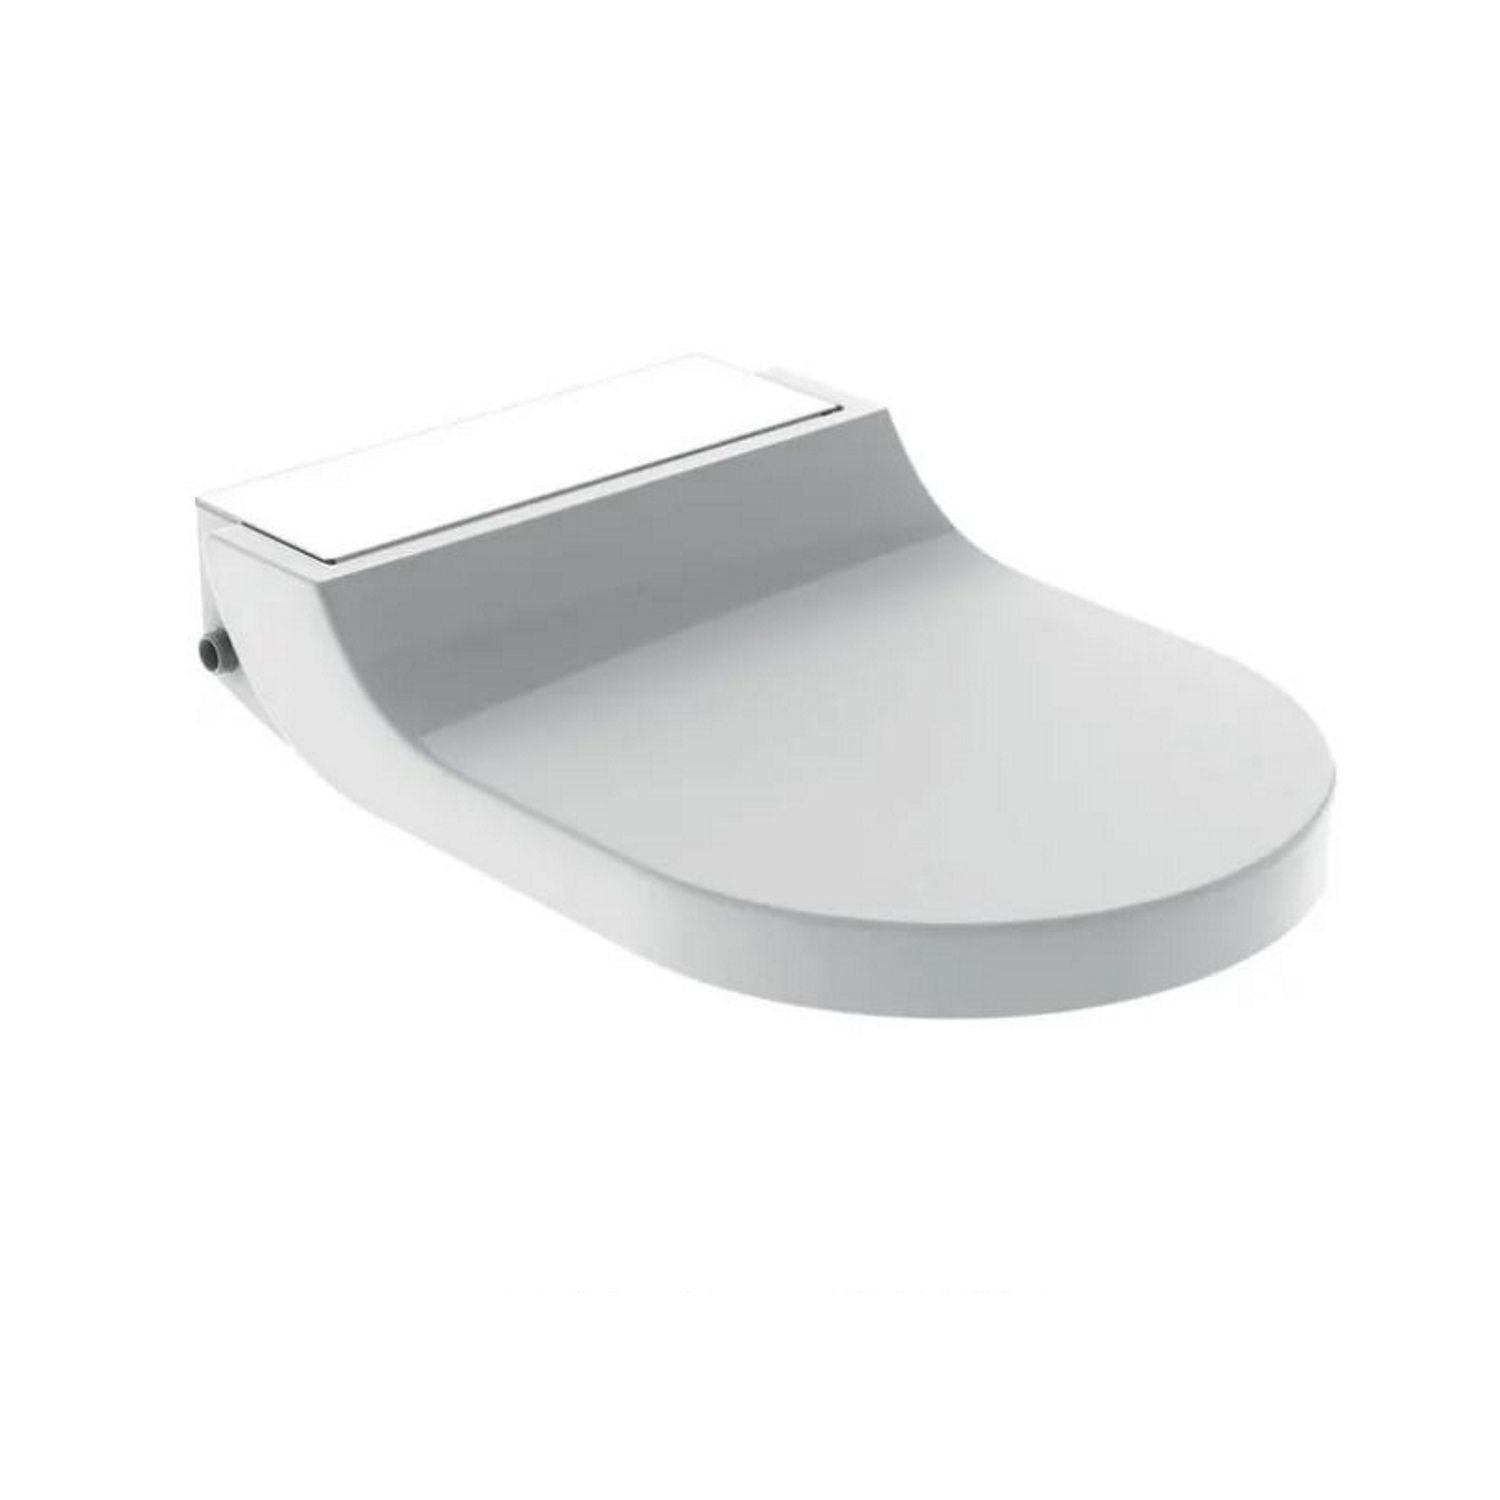 Toiletbril reviews ervaringen Toiletbril design